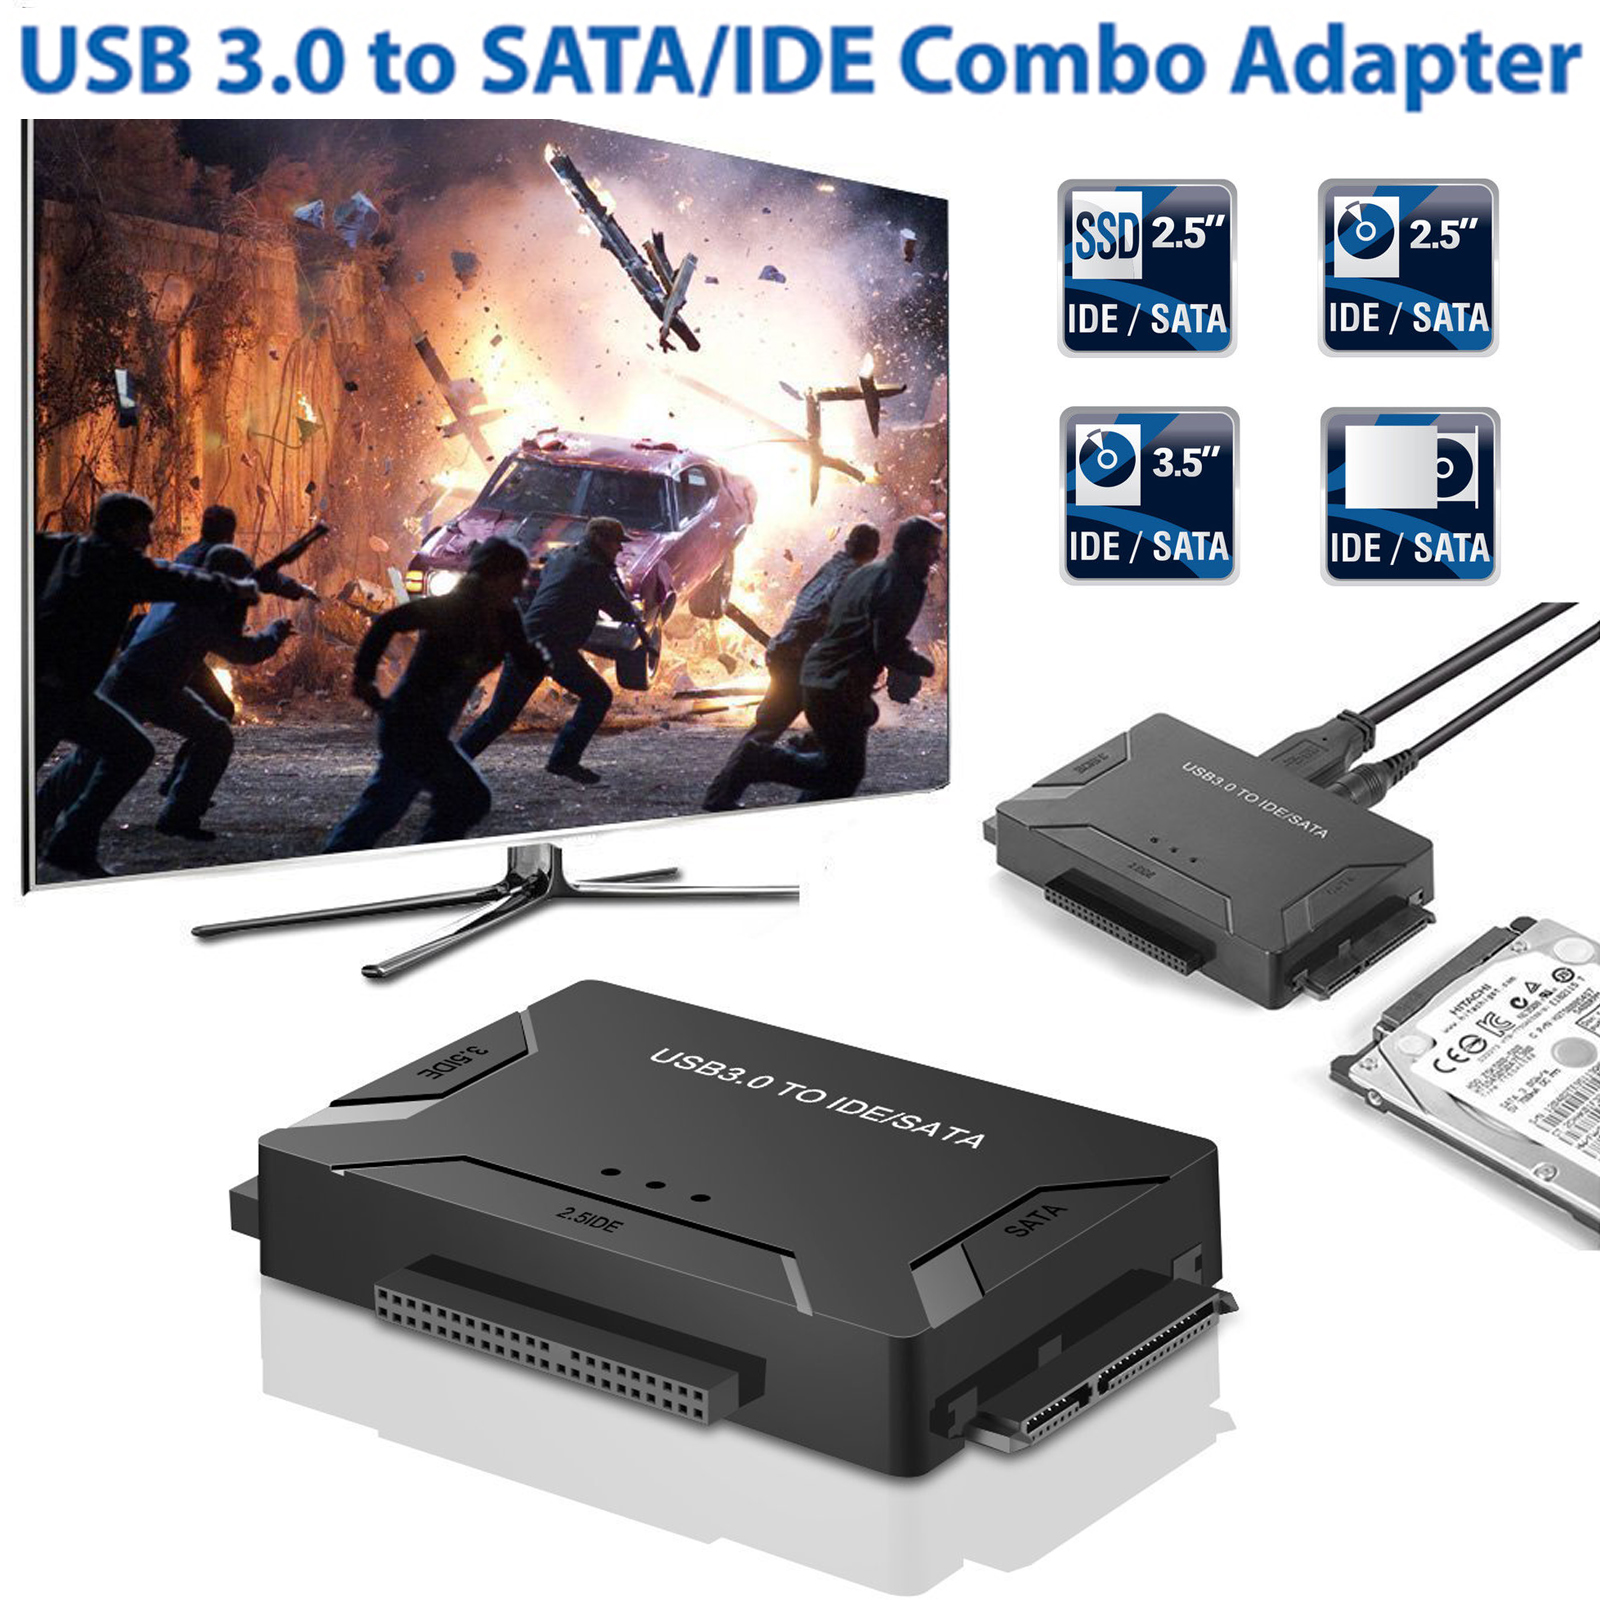 "USB 3.0 to IDE / SATA Converter Hard Drive Adapter with Power Switch for 2.5""/3.5""SATA HDD/SSD & IDE HDD Drives Optical Drive, Support 5TB"